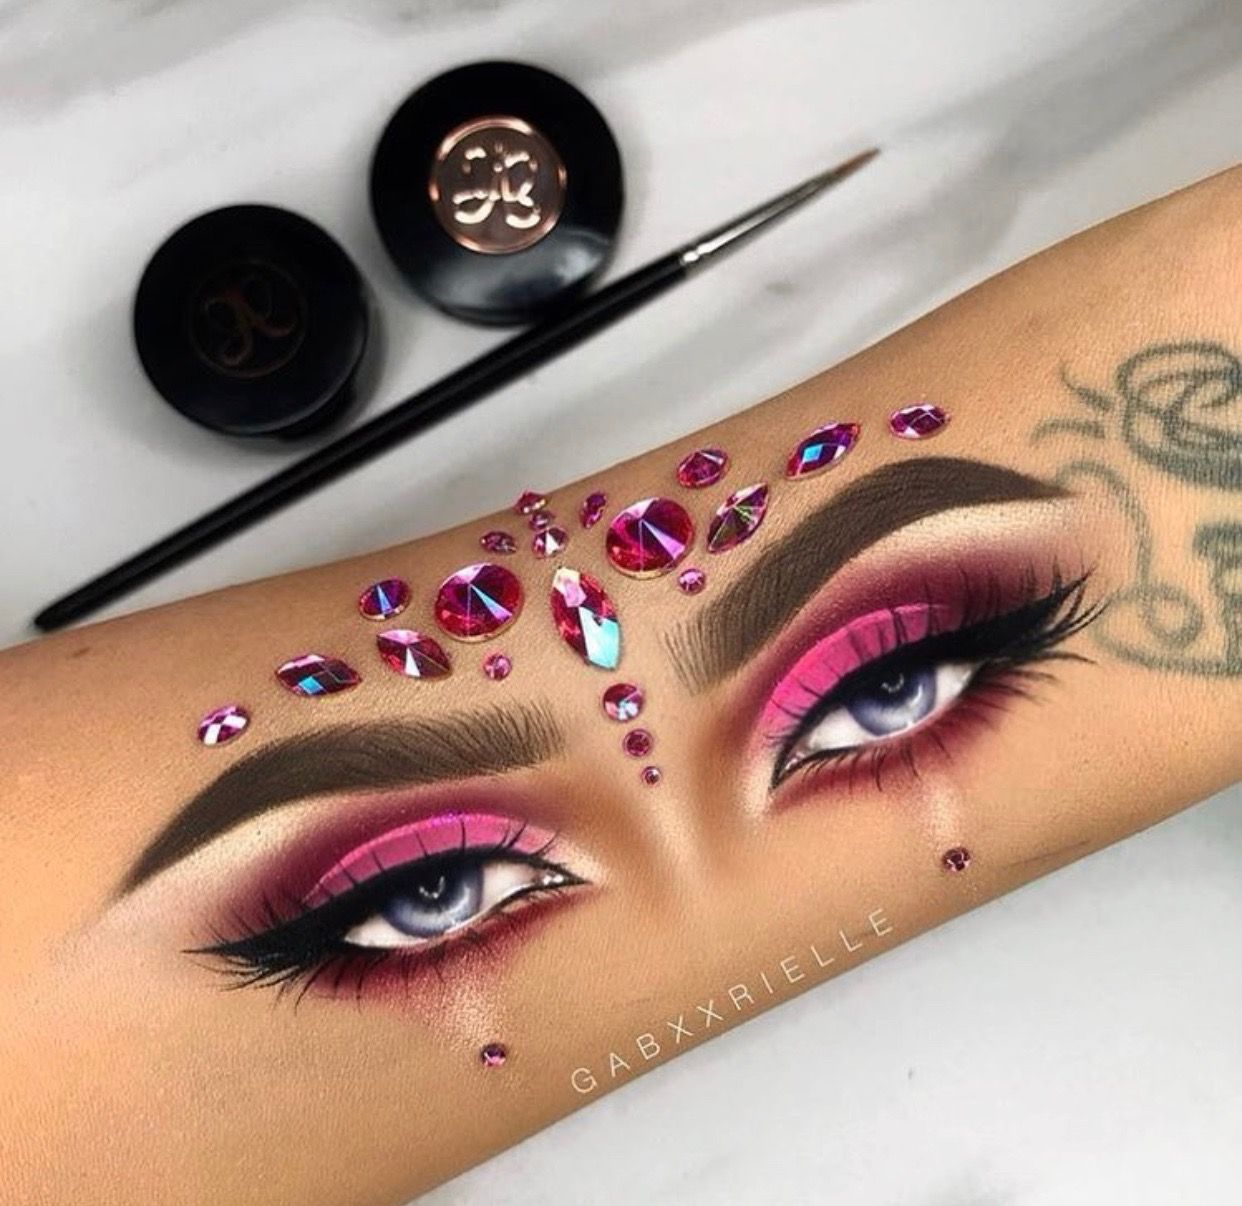 Pin By Melissa Bryant On Gabxxrielle Eye Makeup Hand Makeup